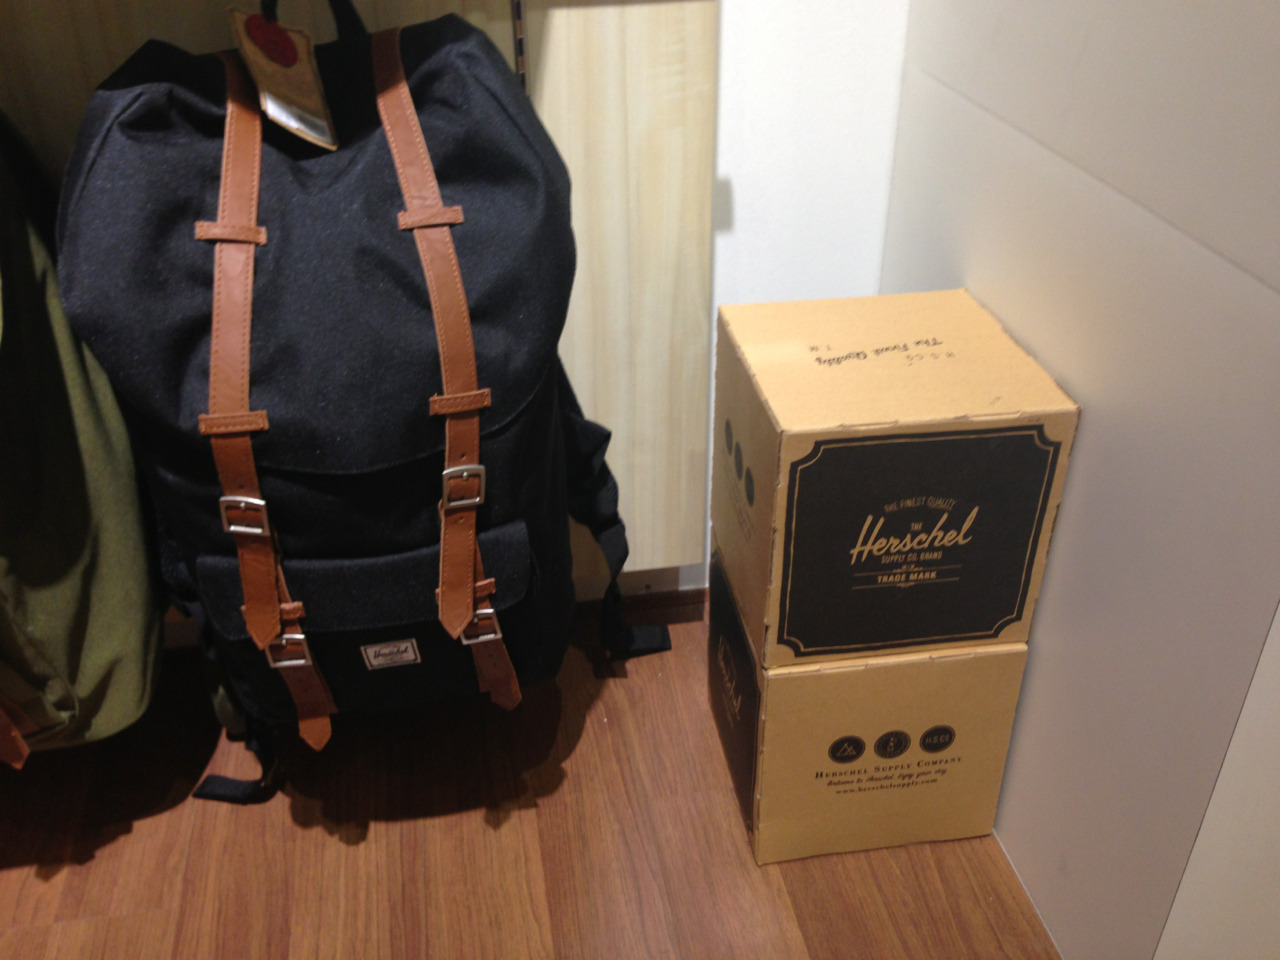 #backpacks #herschel